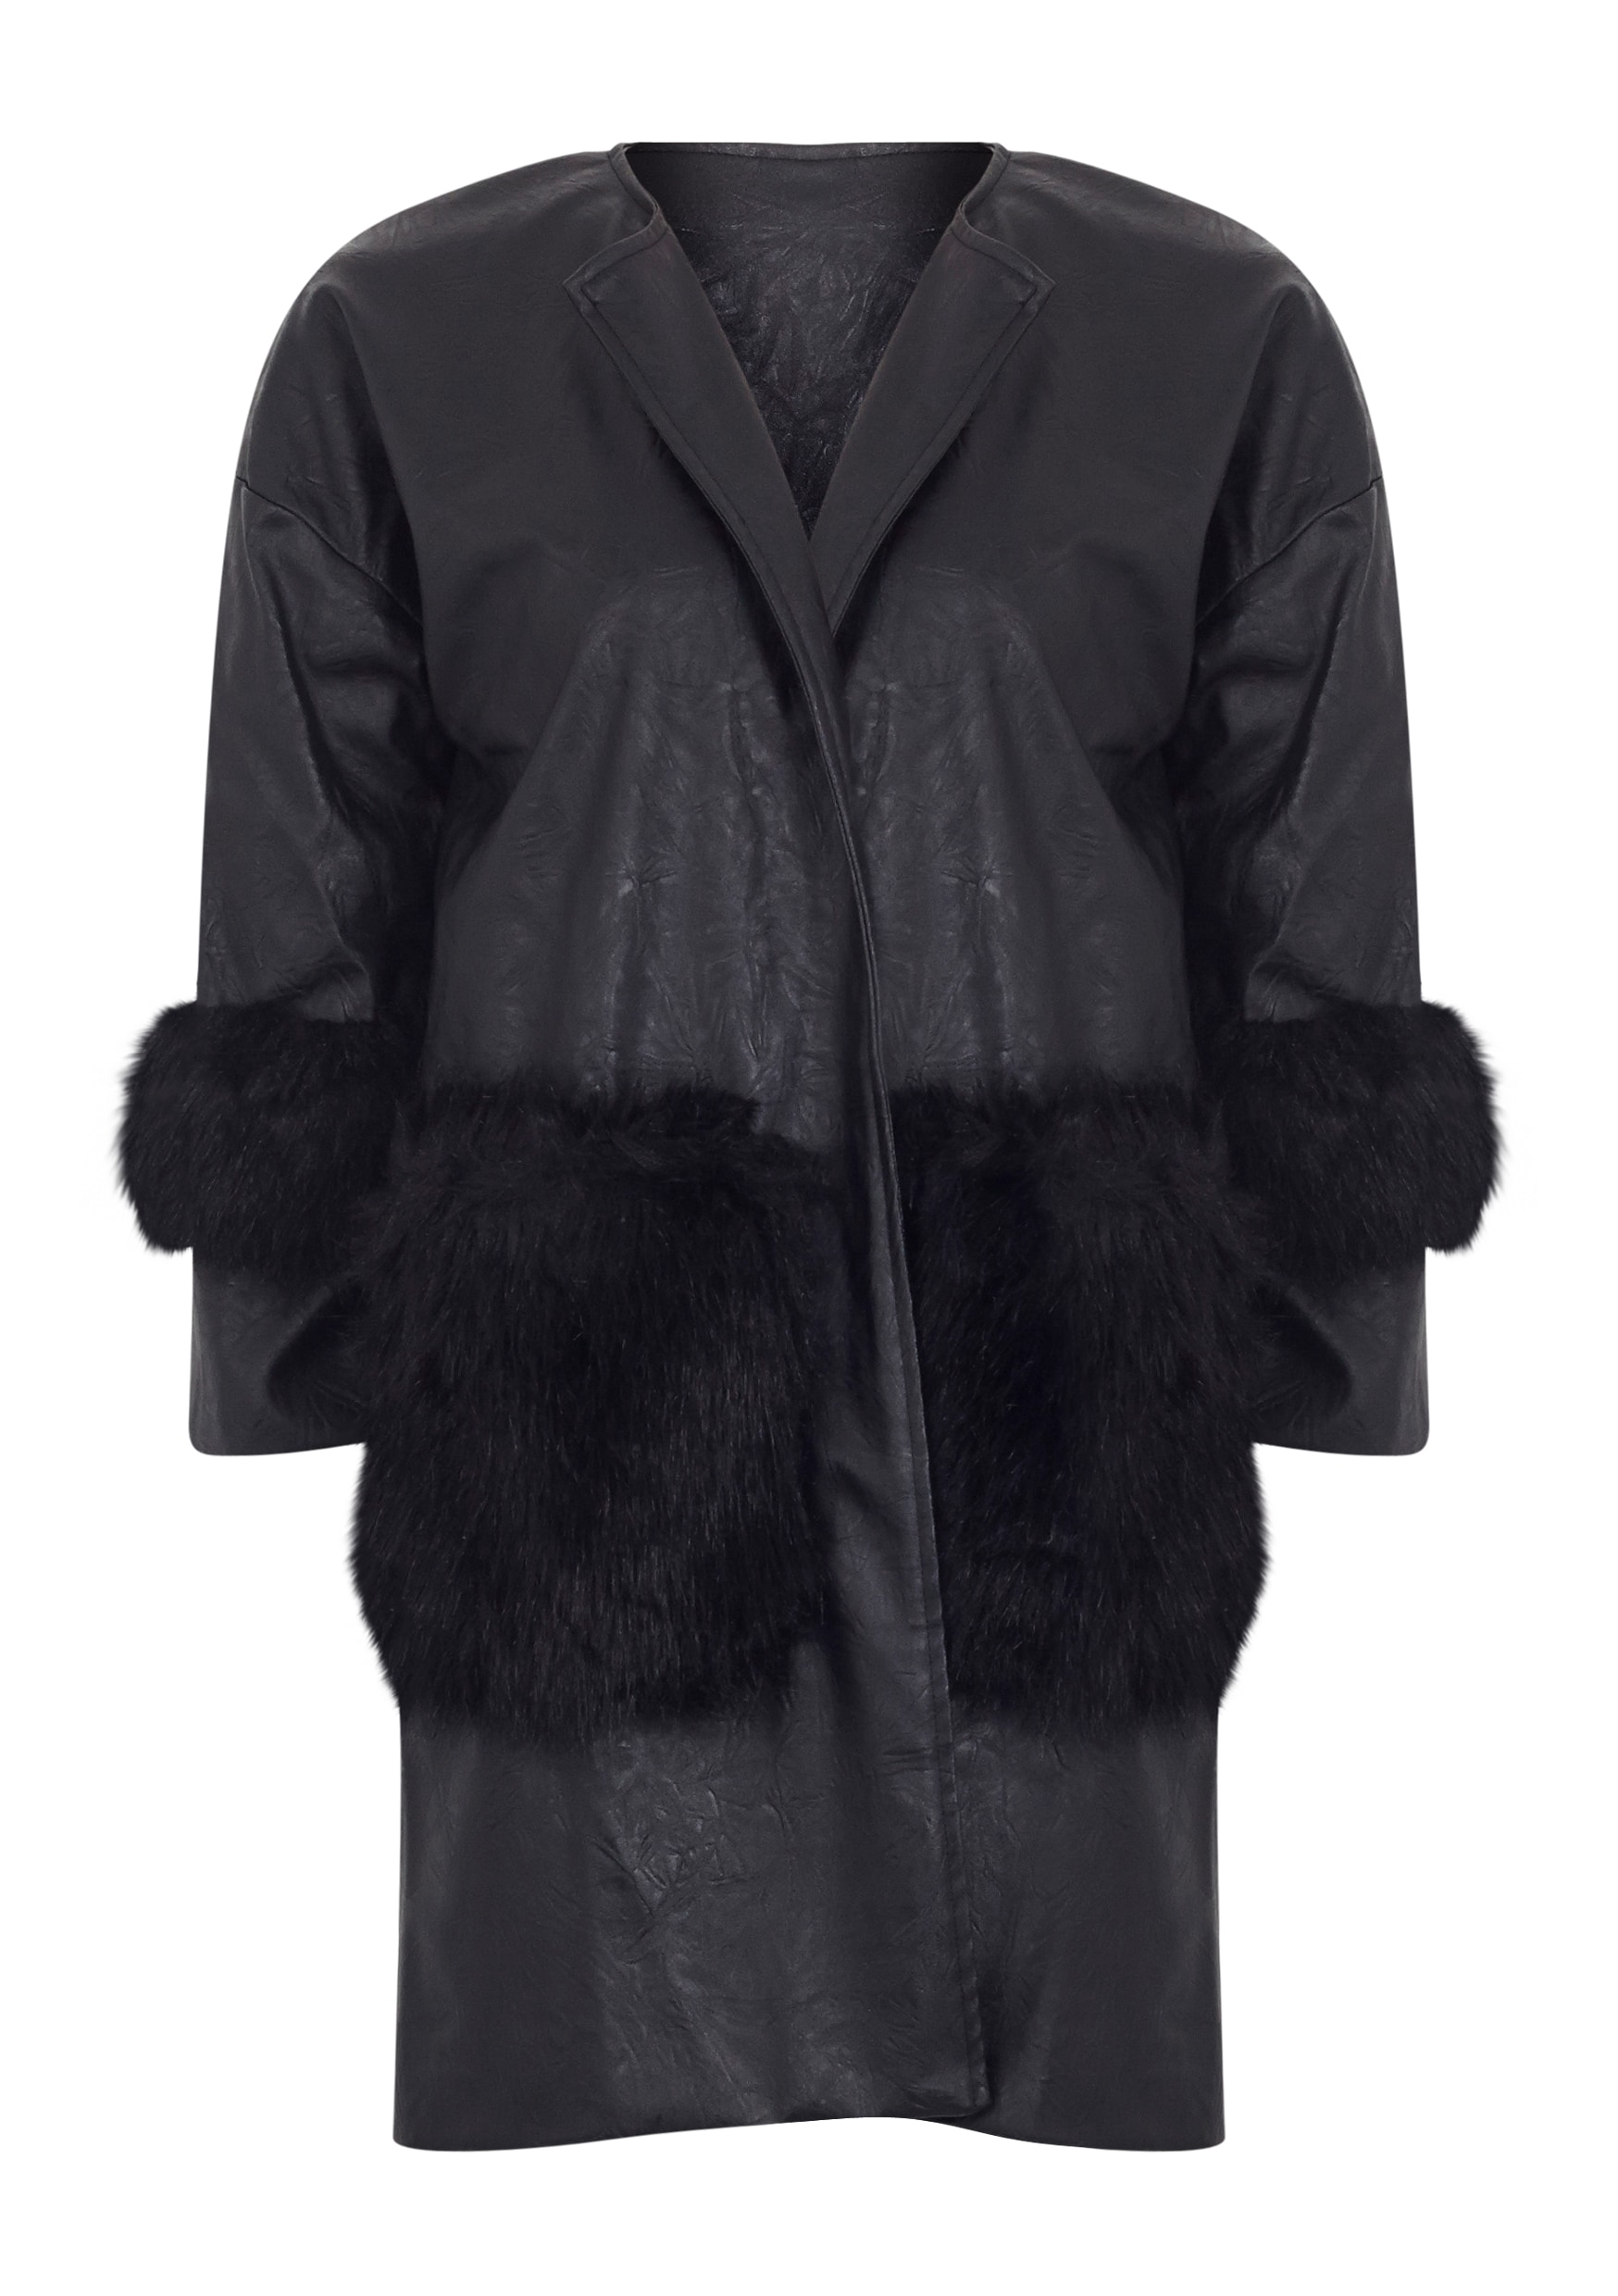 Nigela Black Leather Faux Fur Detail Collarless Coat-S 5